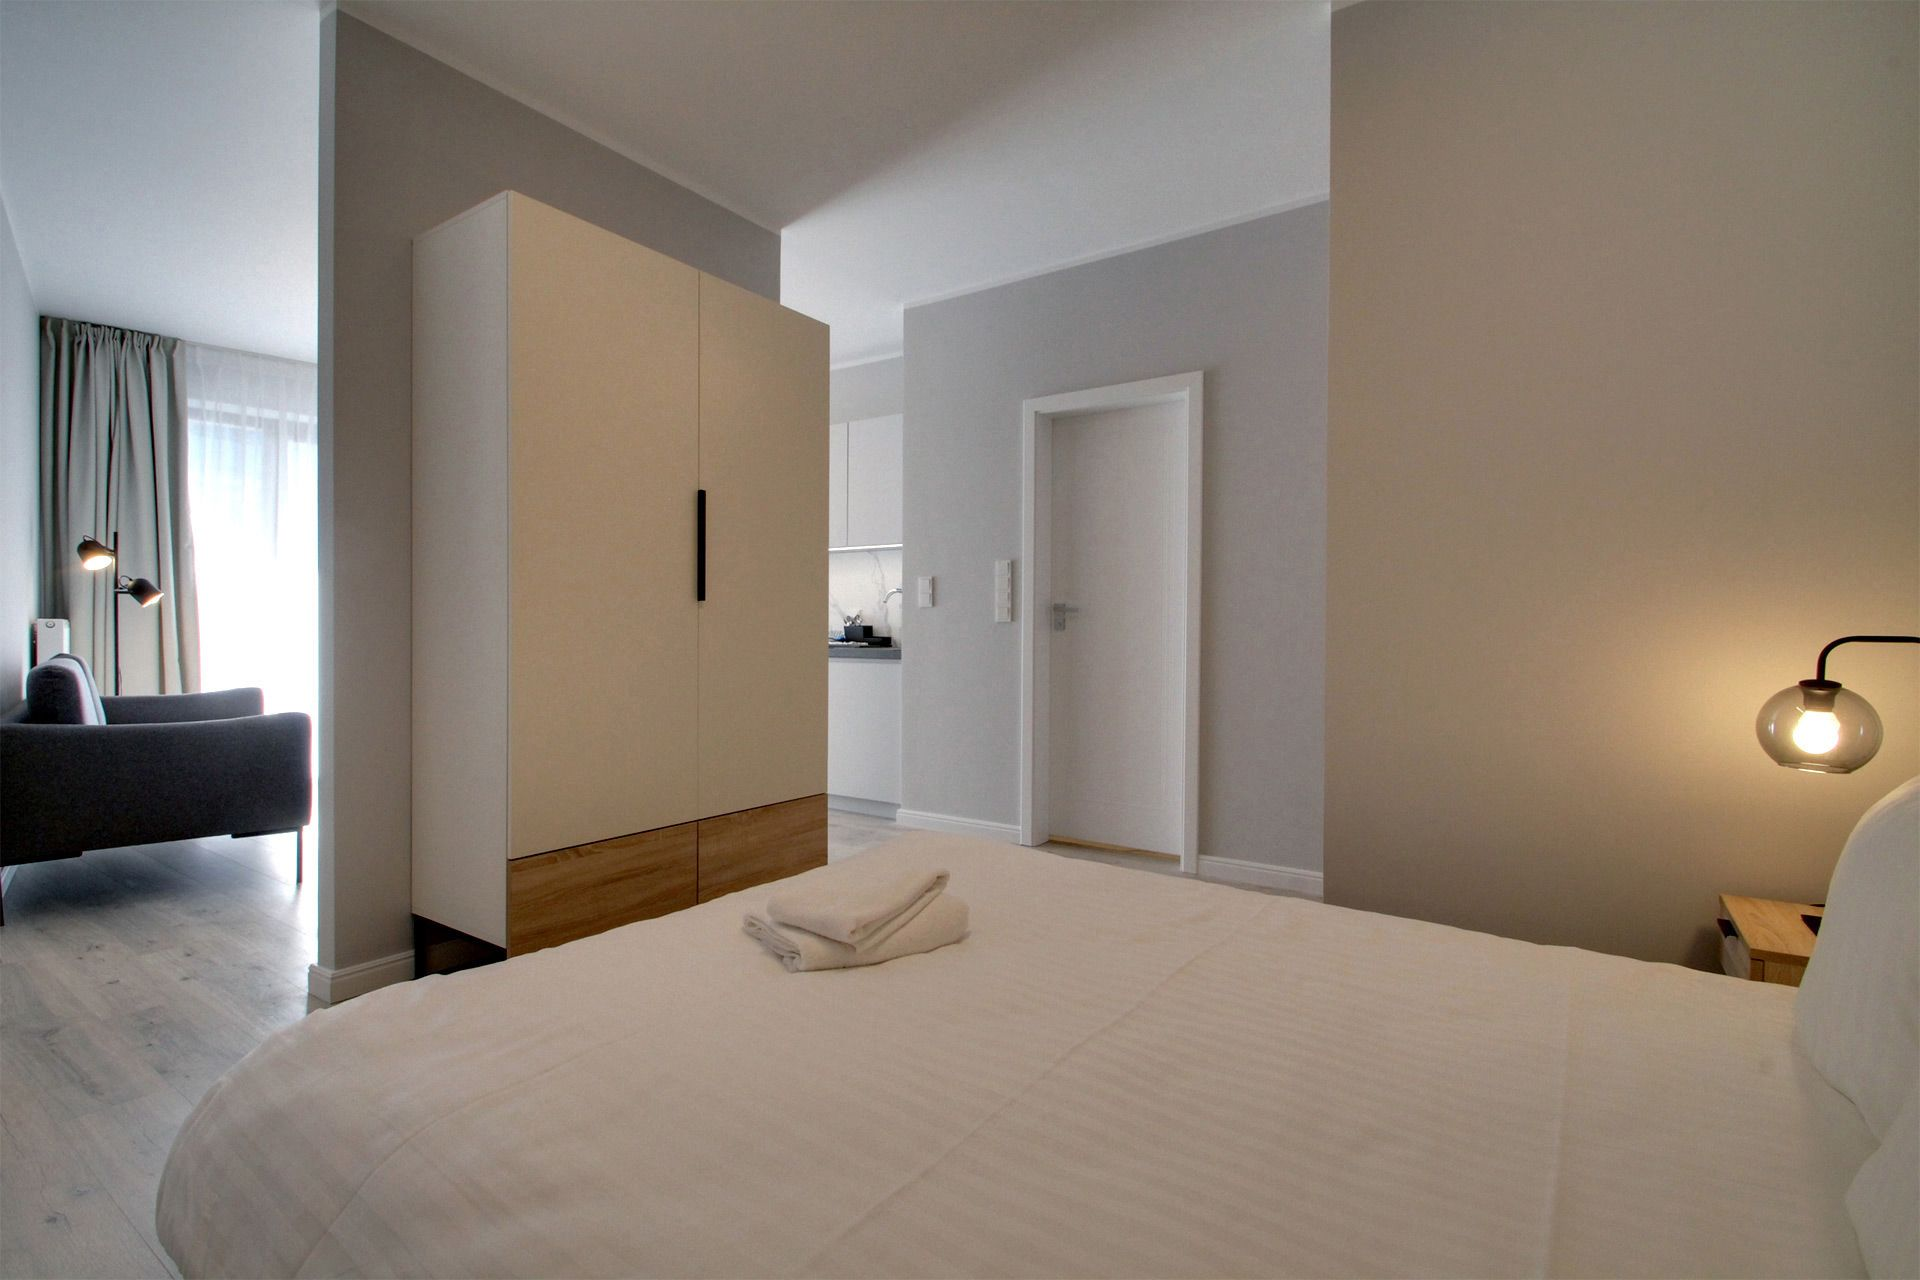 Studio - Medium apartment to rent in Warsaw UPR-A-009-1